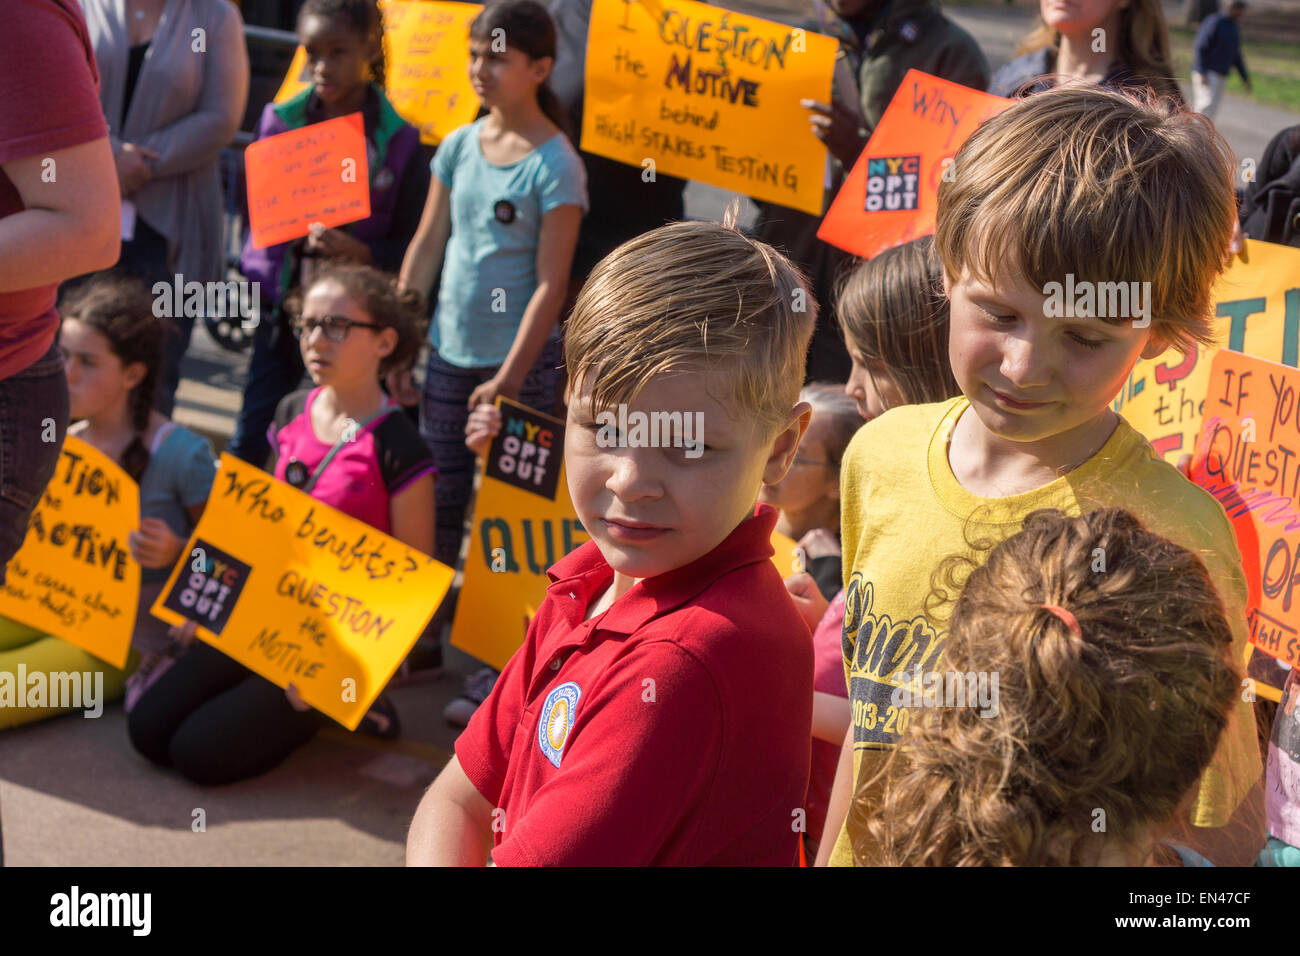 Parents and their children rally against Common Core testing and urge other parents to opt-out, in Prospect Park - Stock Image